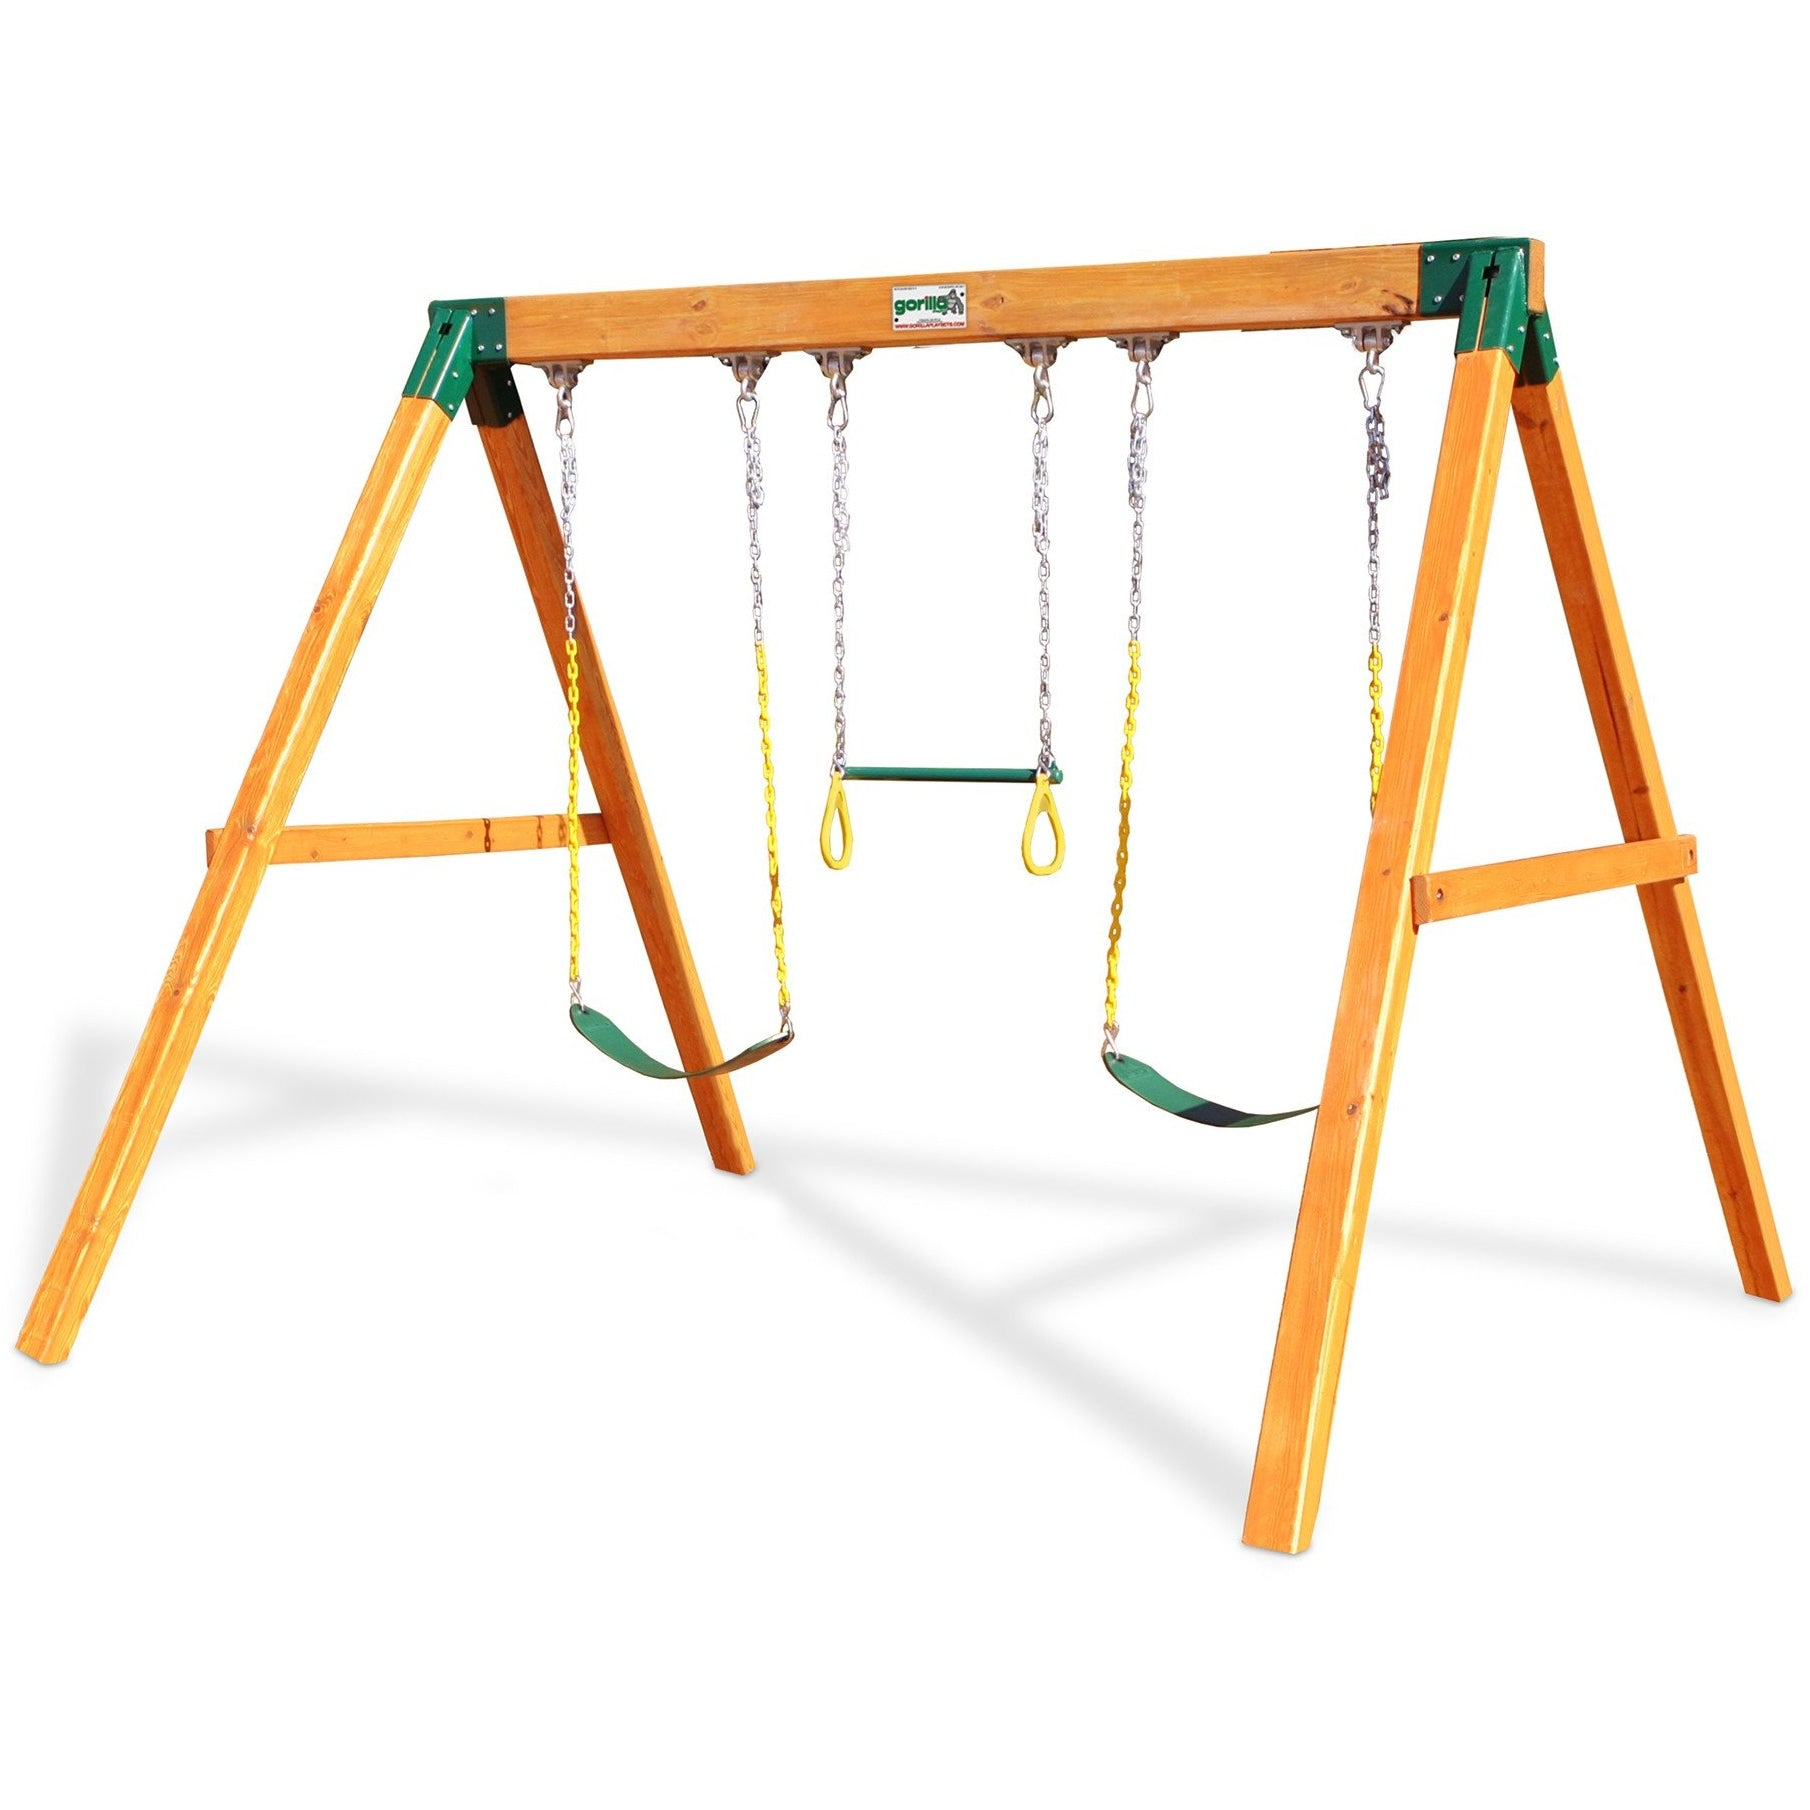 Gorilla Playsets 3 Position Swing Station - Amber Stained Cedar 01-0002 - Swings and More